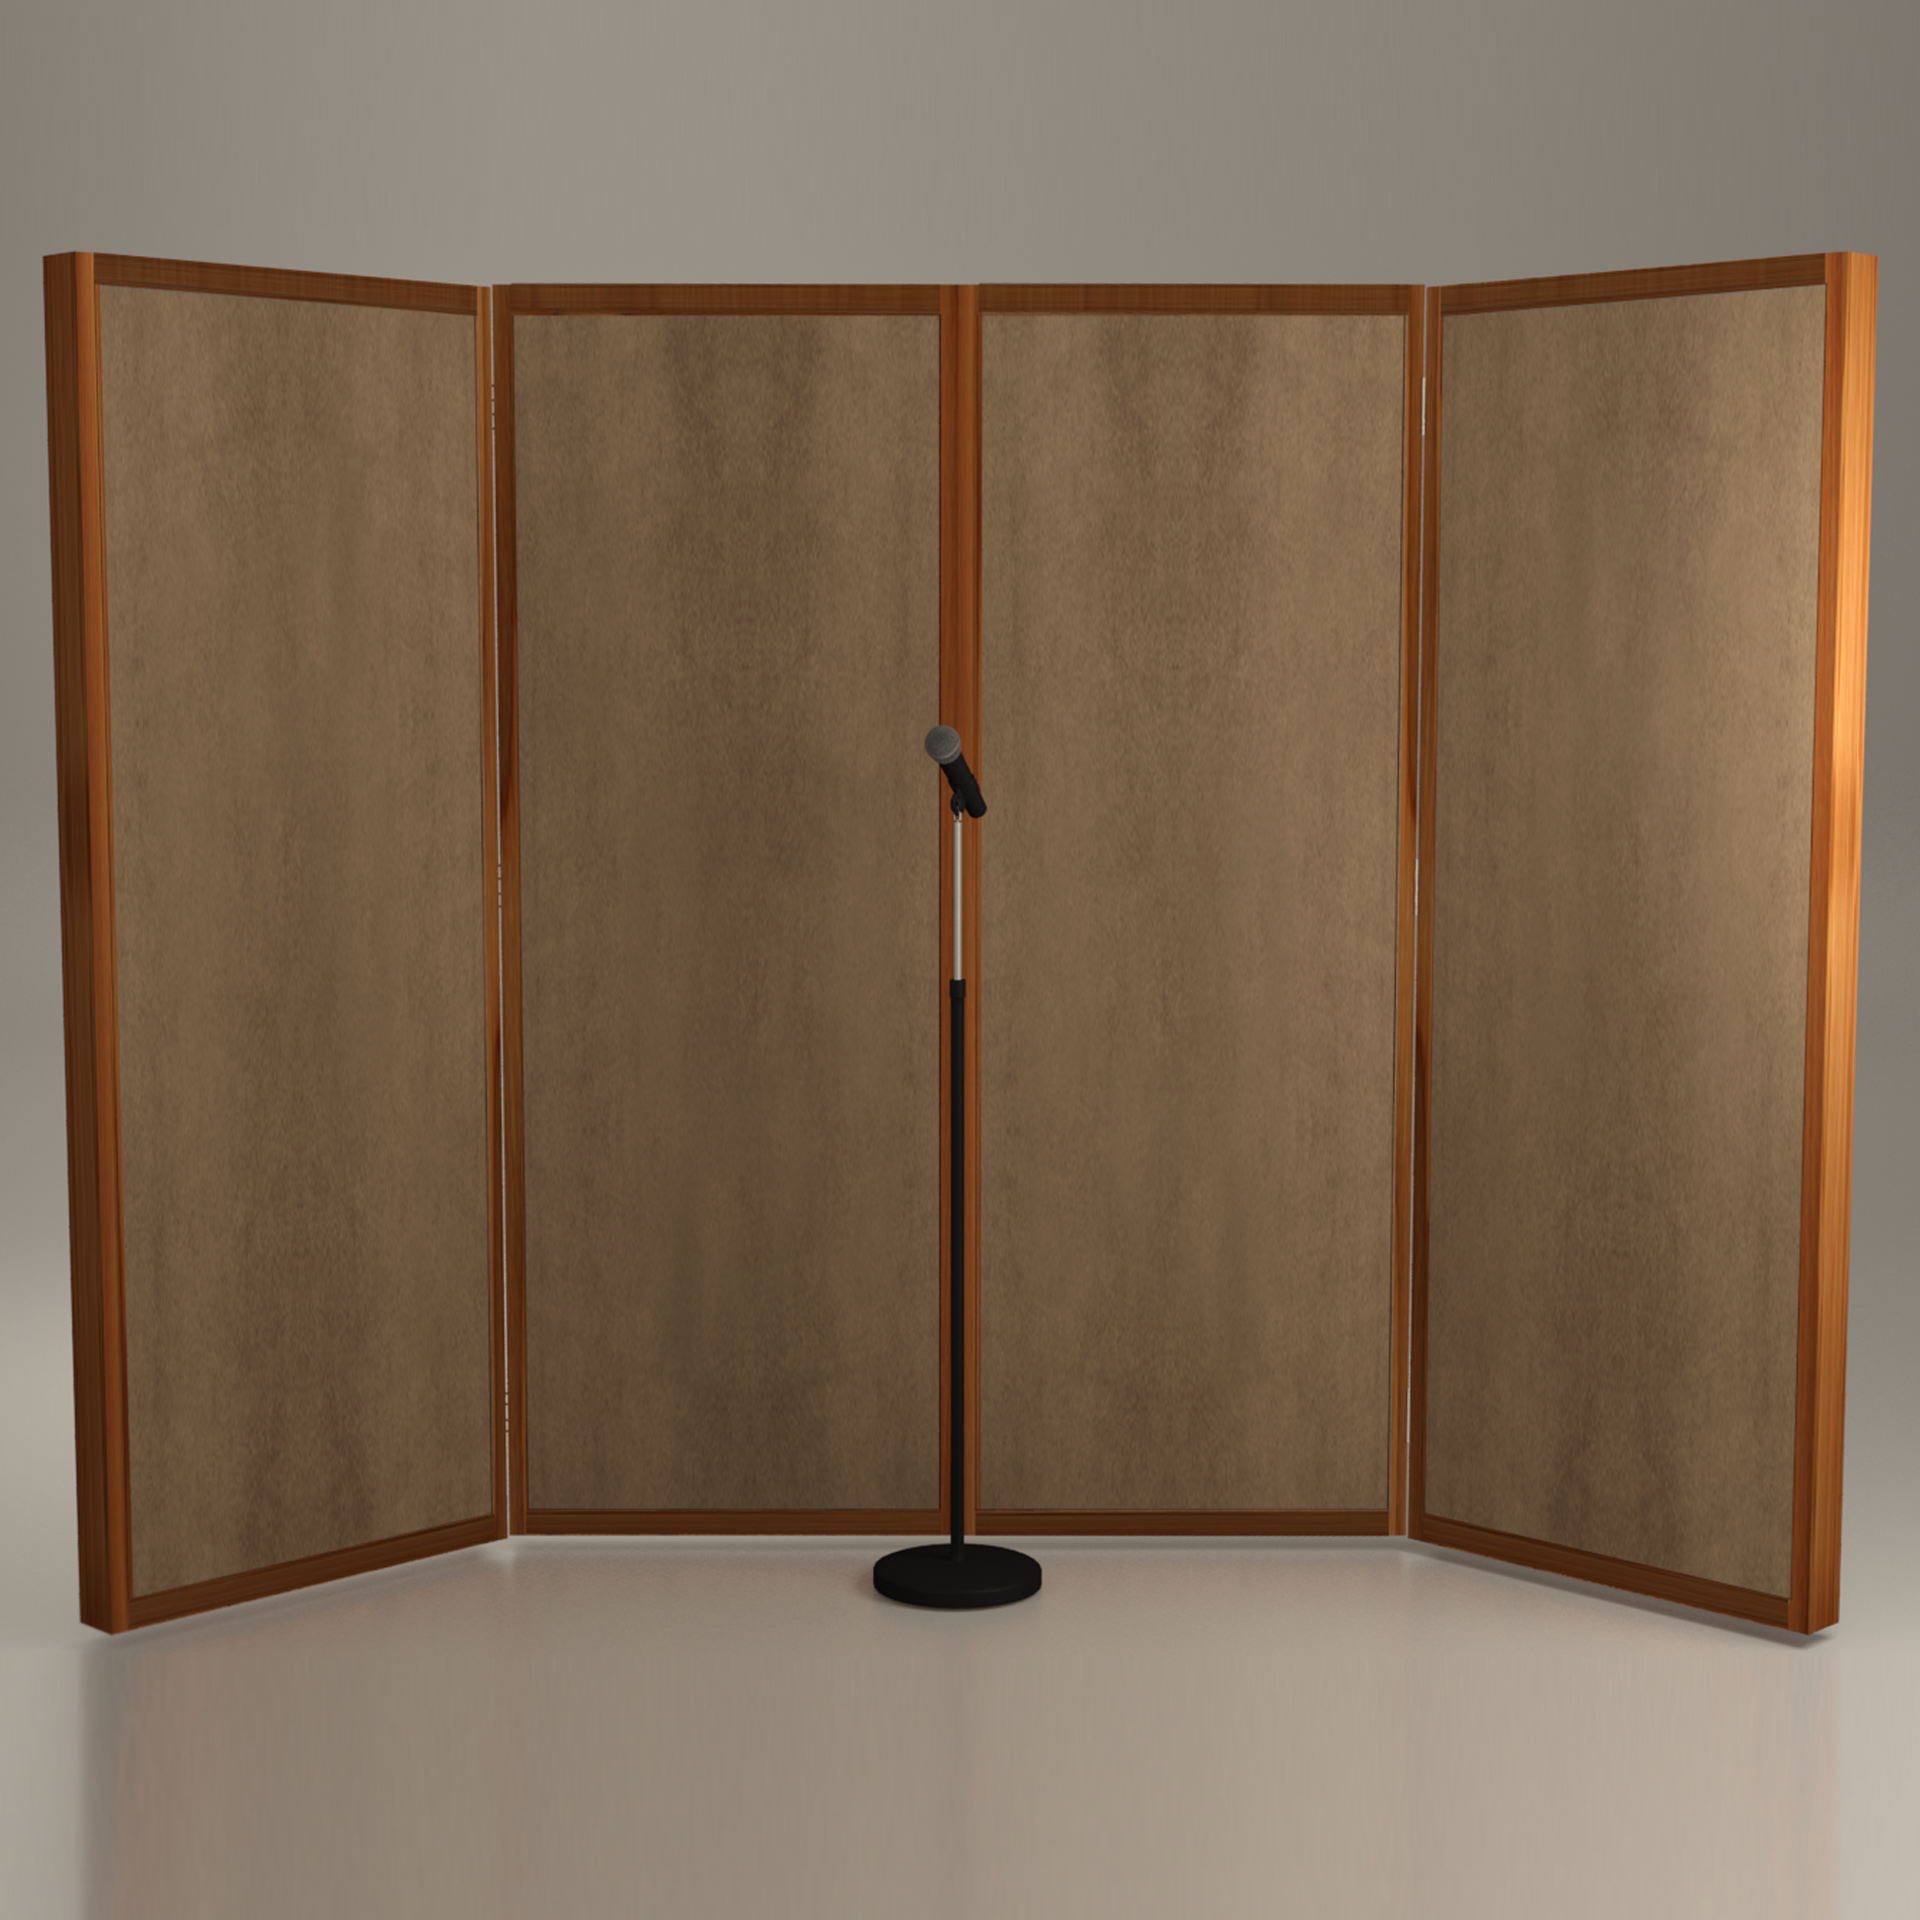 Booth vocal booth system 6 39 x8 39 x2 in 2019 home studio - Bedroom studio acoustic treatment ...